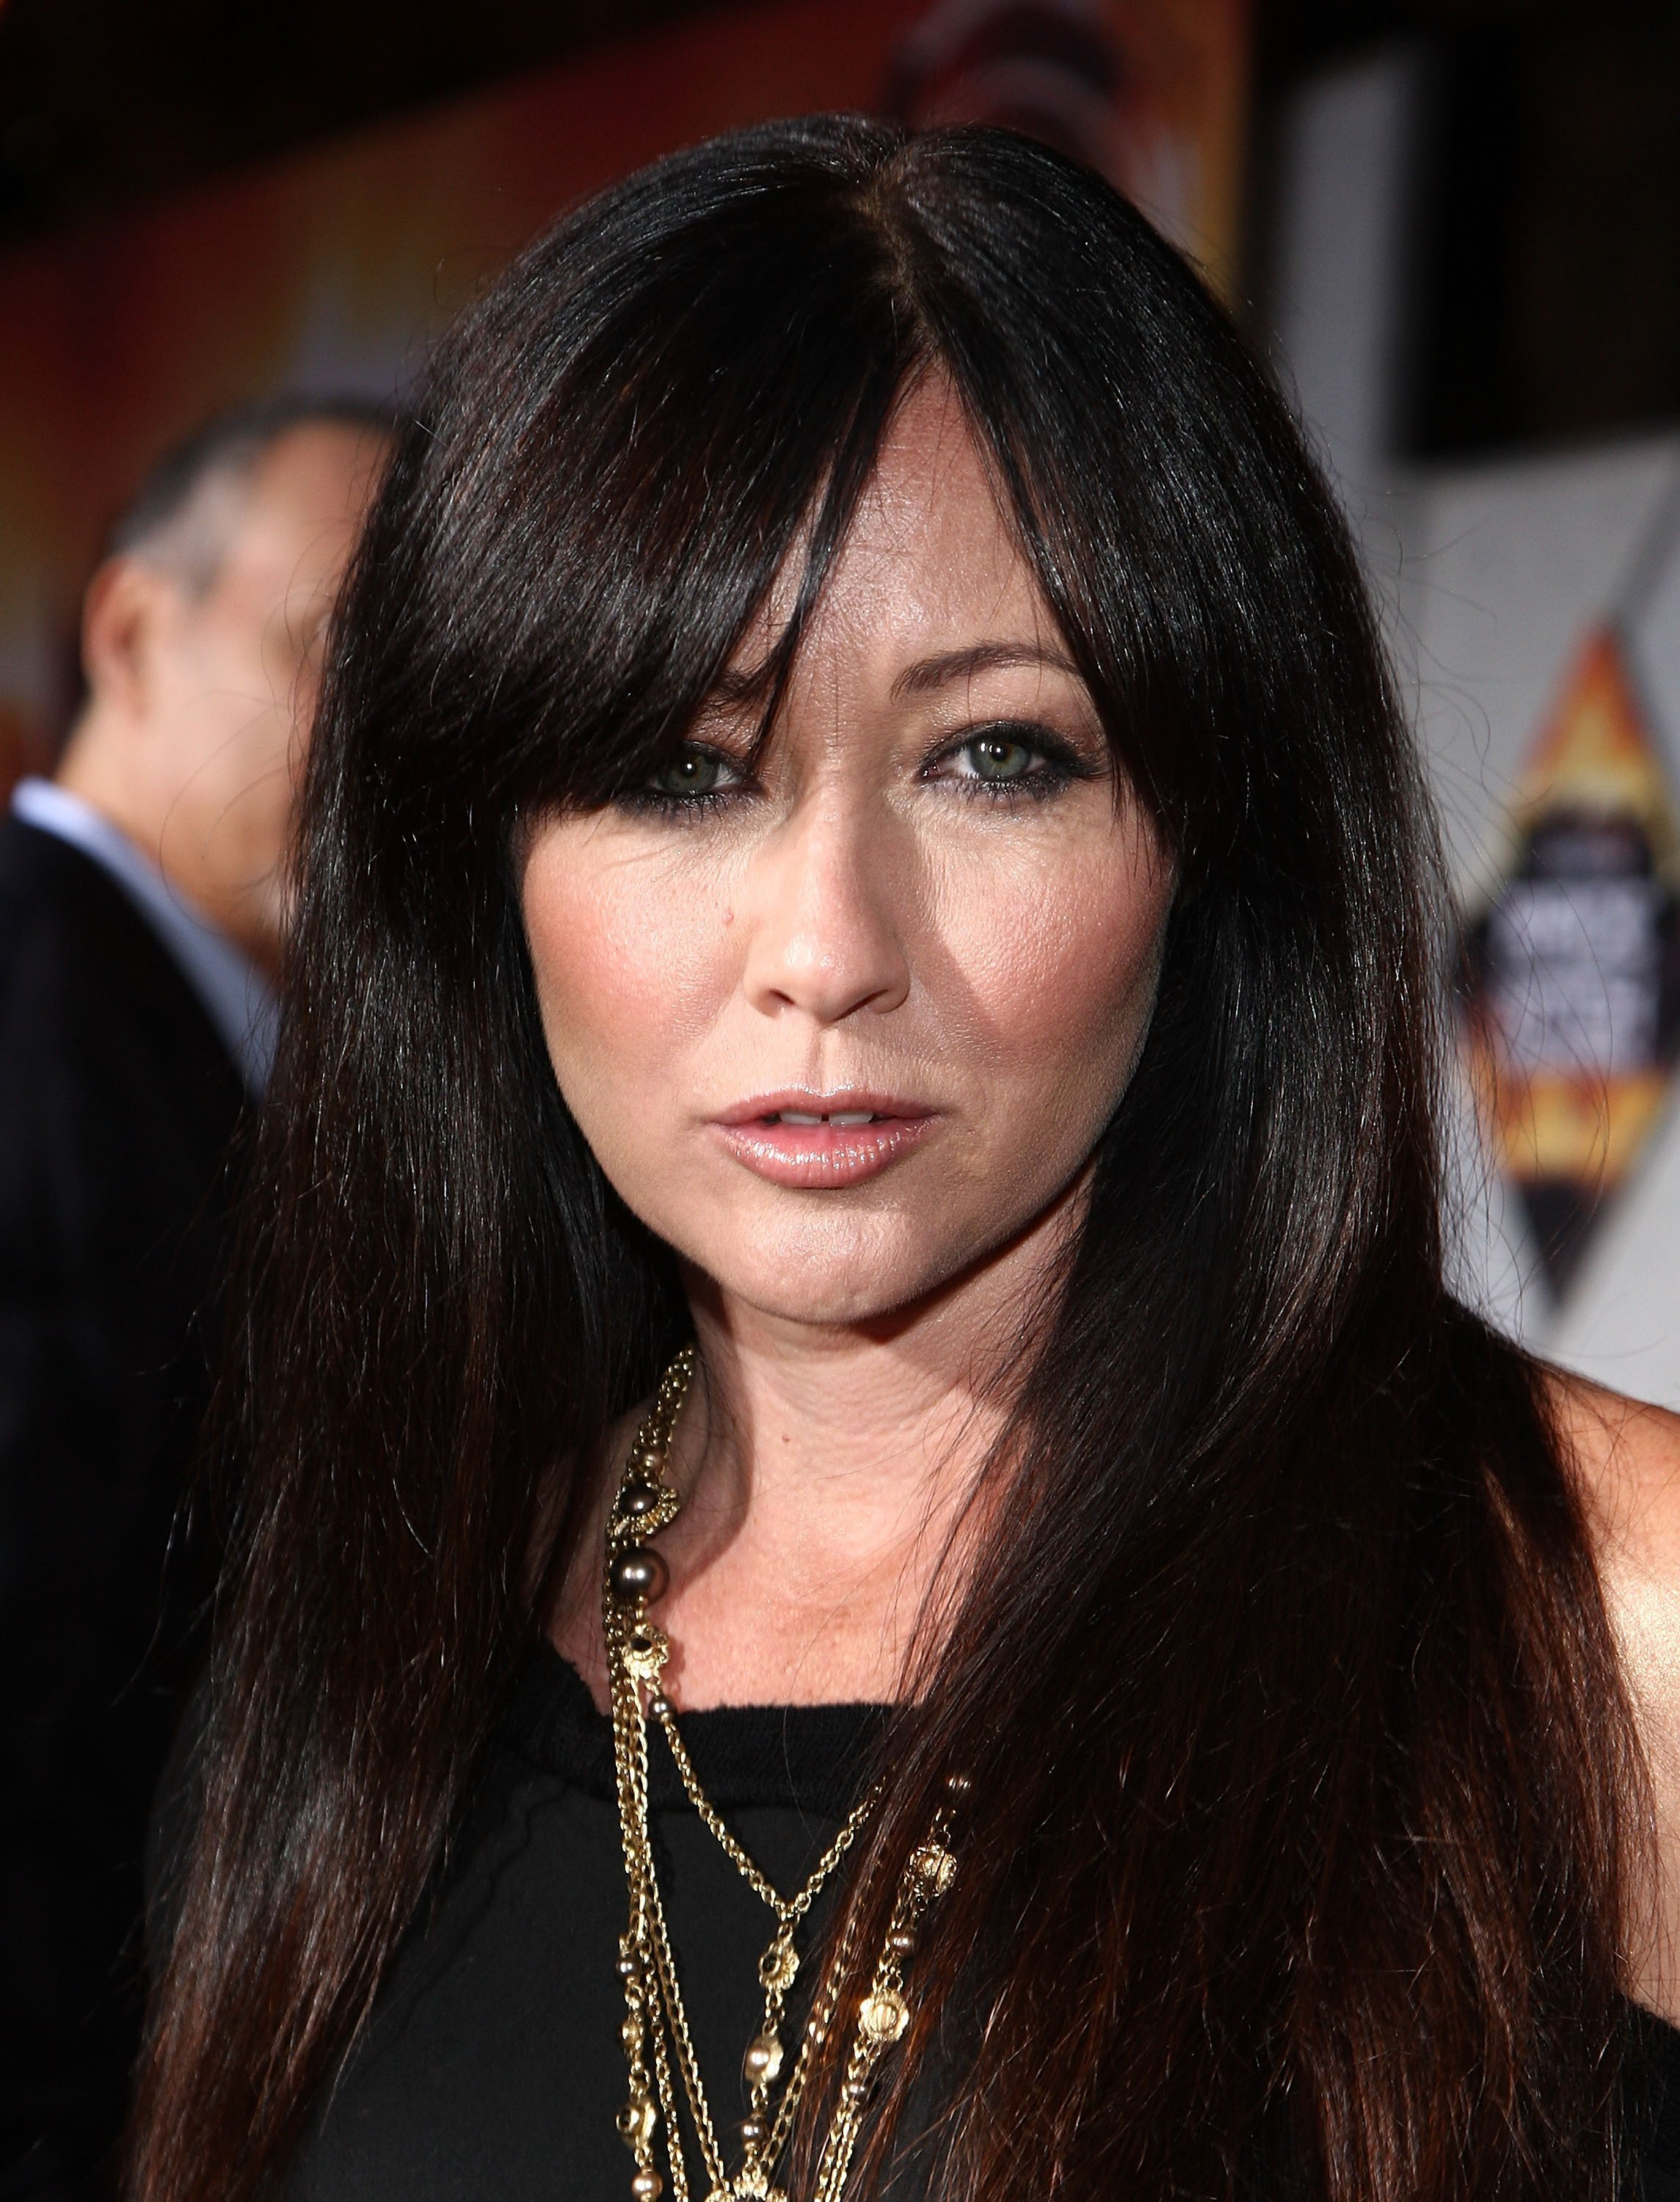 Shannen Doherty at the 2015 Baby 2 Baby Gala | Photo: Getty Images